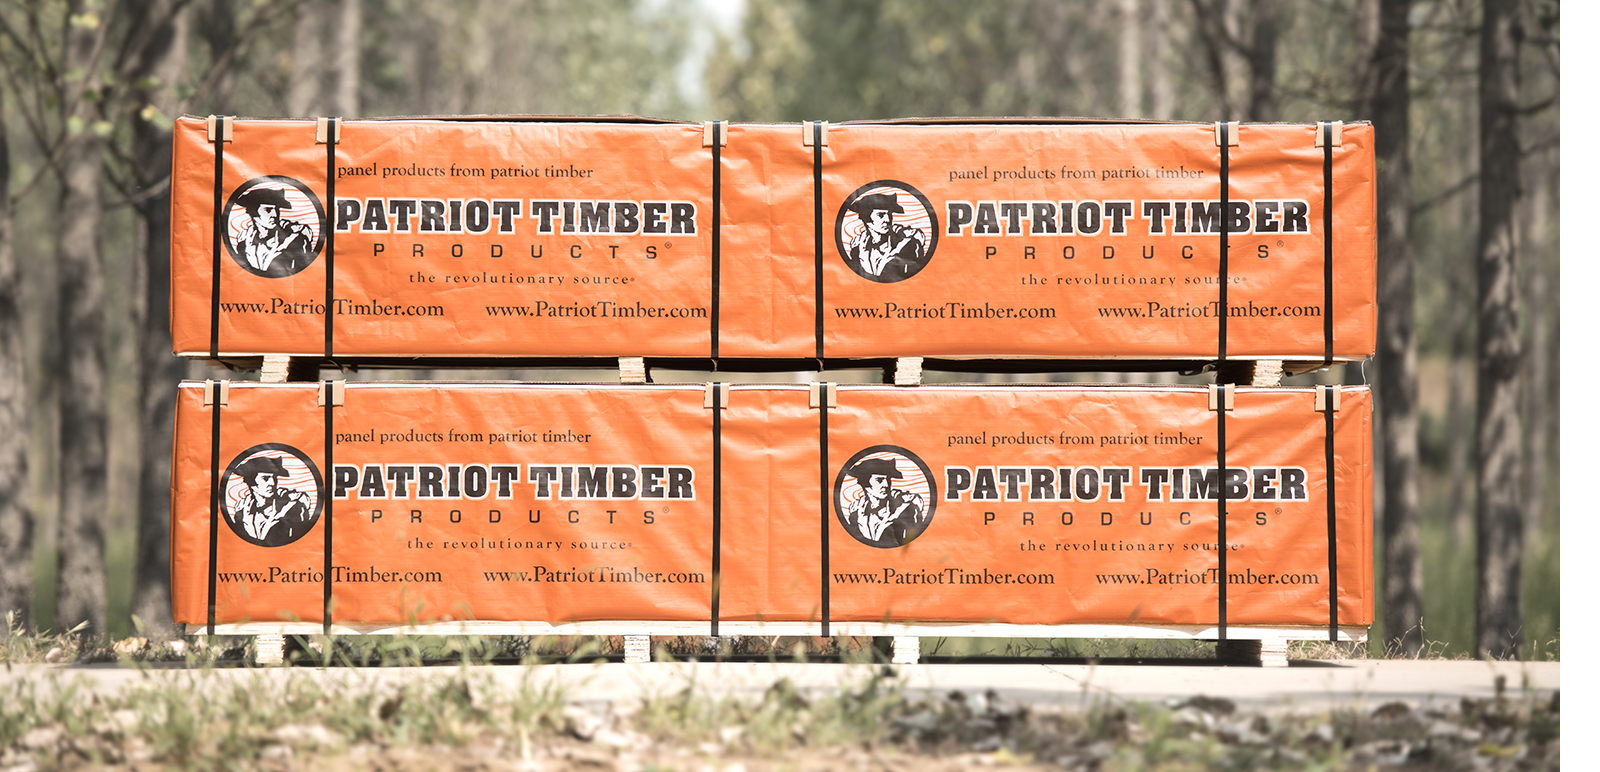 Patriot Timber Premium Plywood Panel Products